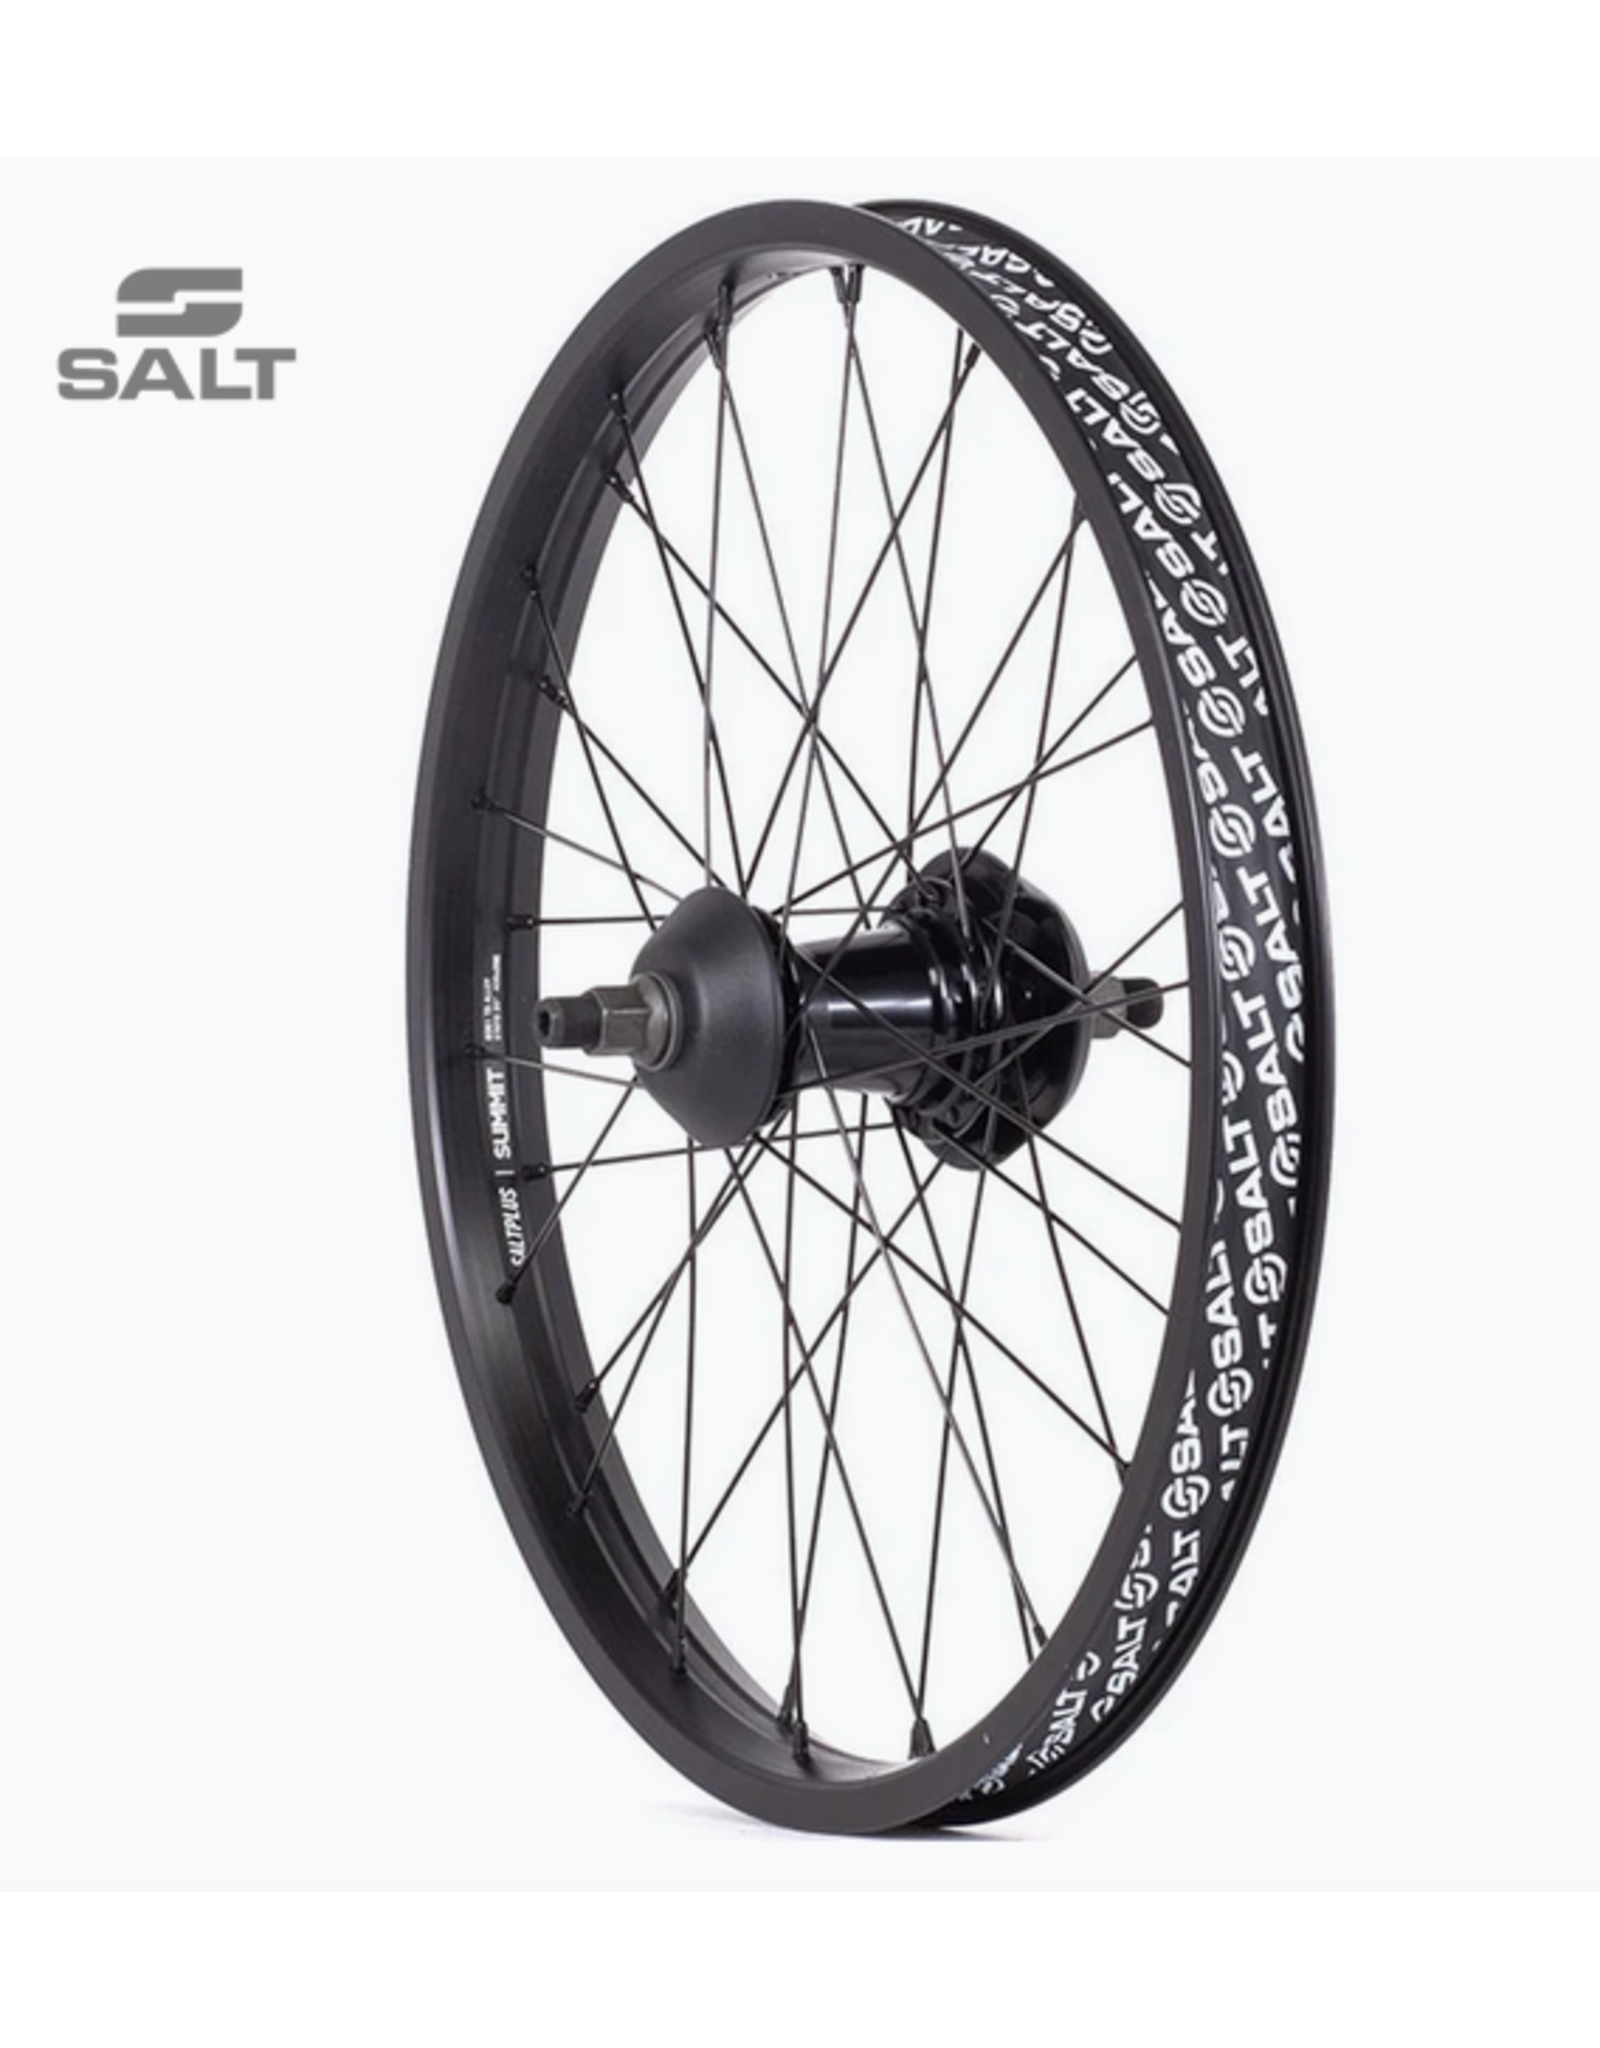 SALT BMX EVEREST FREECOASTER RHD 9T BLACK REAR WHEEL